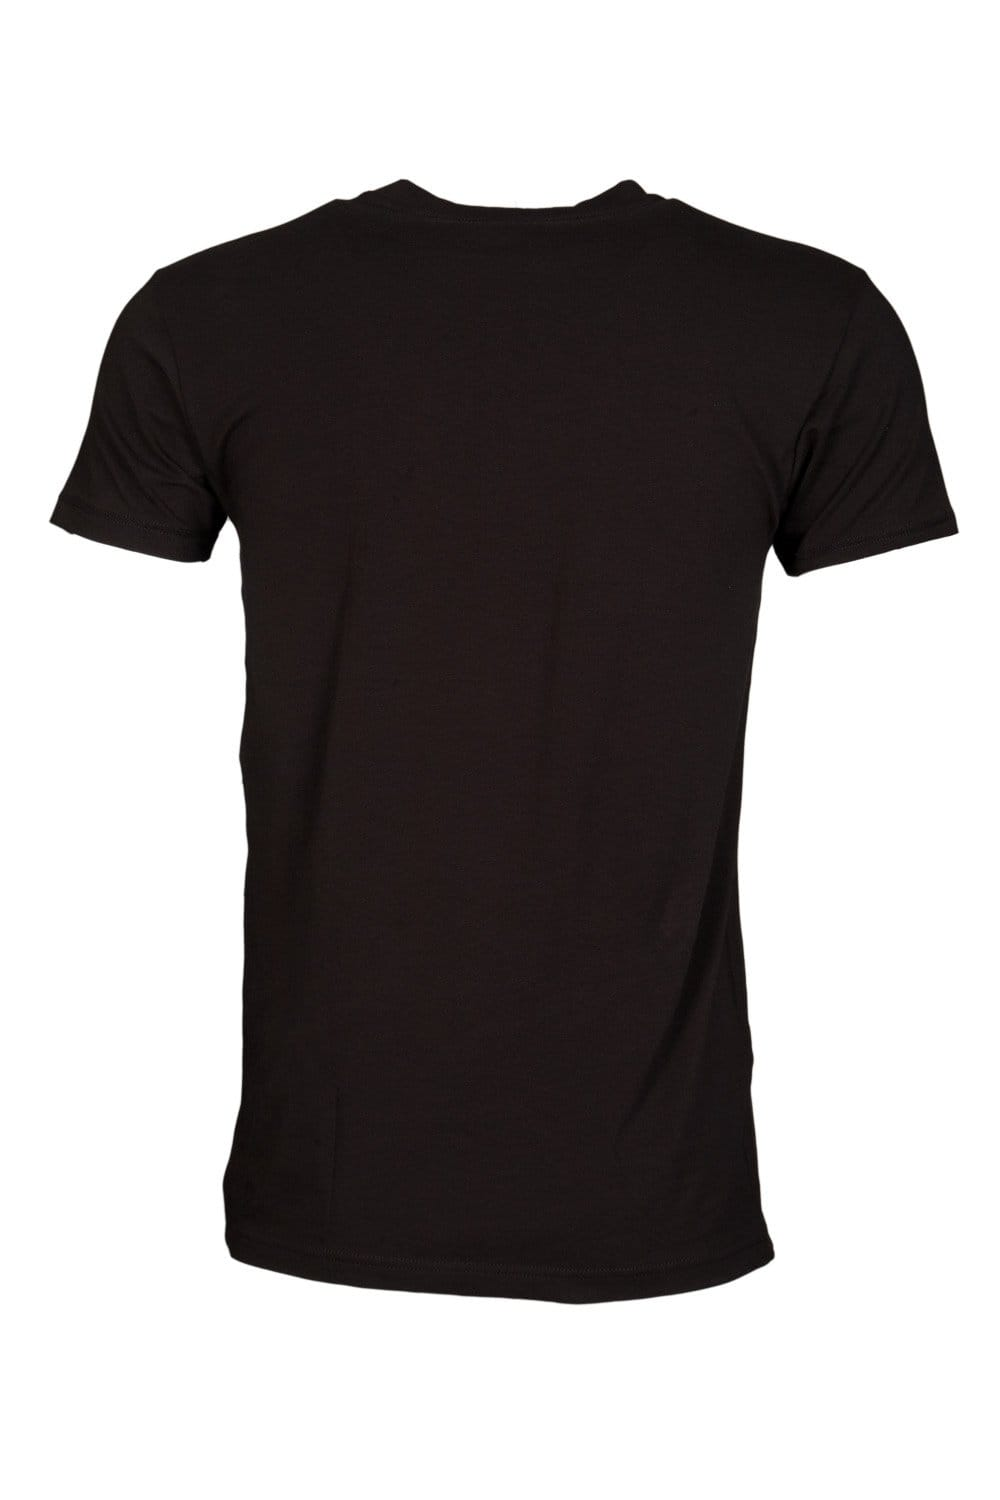 emporio armani underwear round neck tee t shirt in black. Black Bedroom Furniture Sets. Home Design Ideas